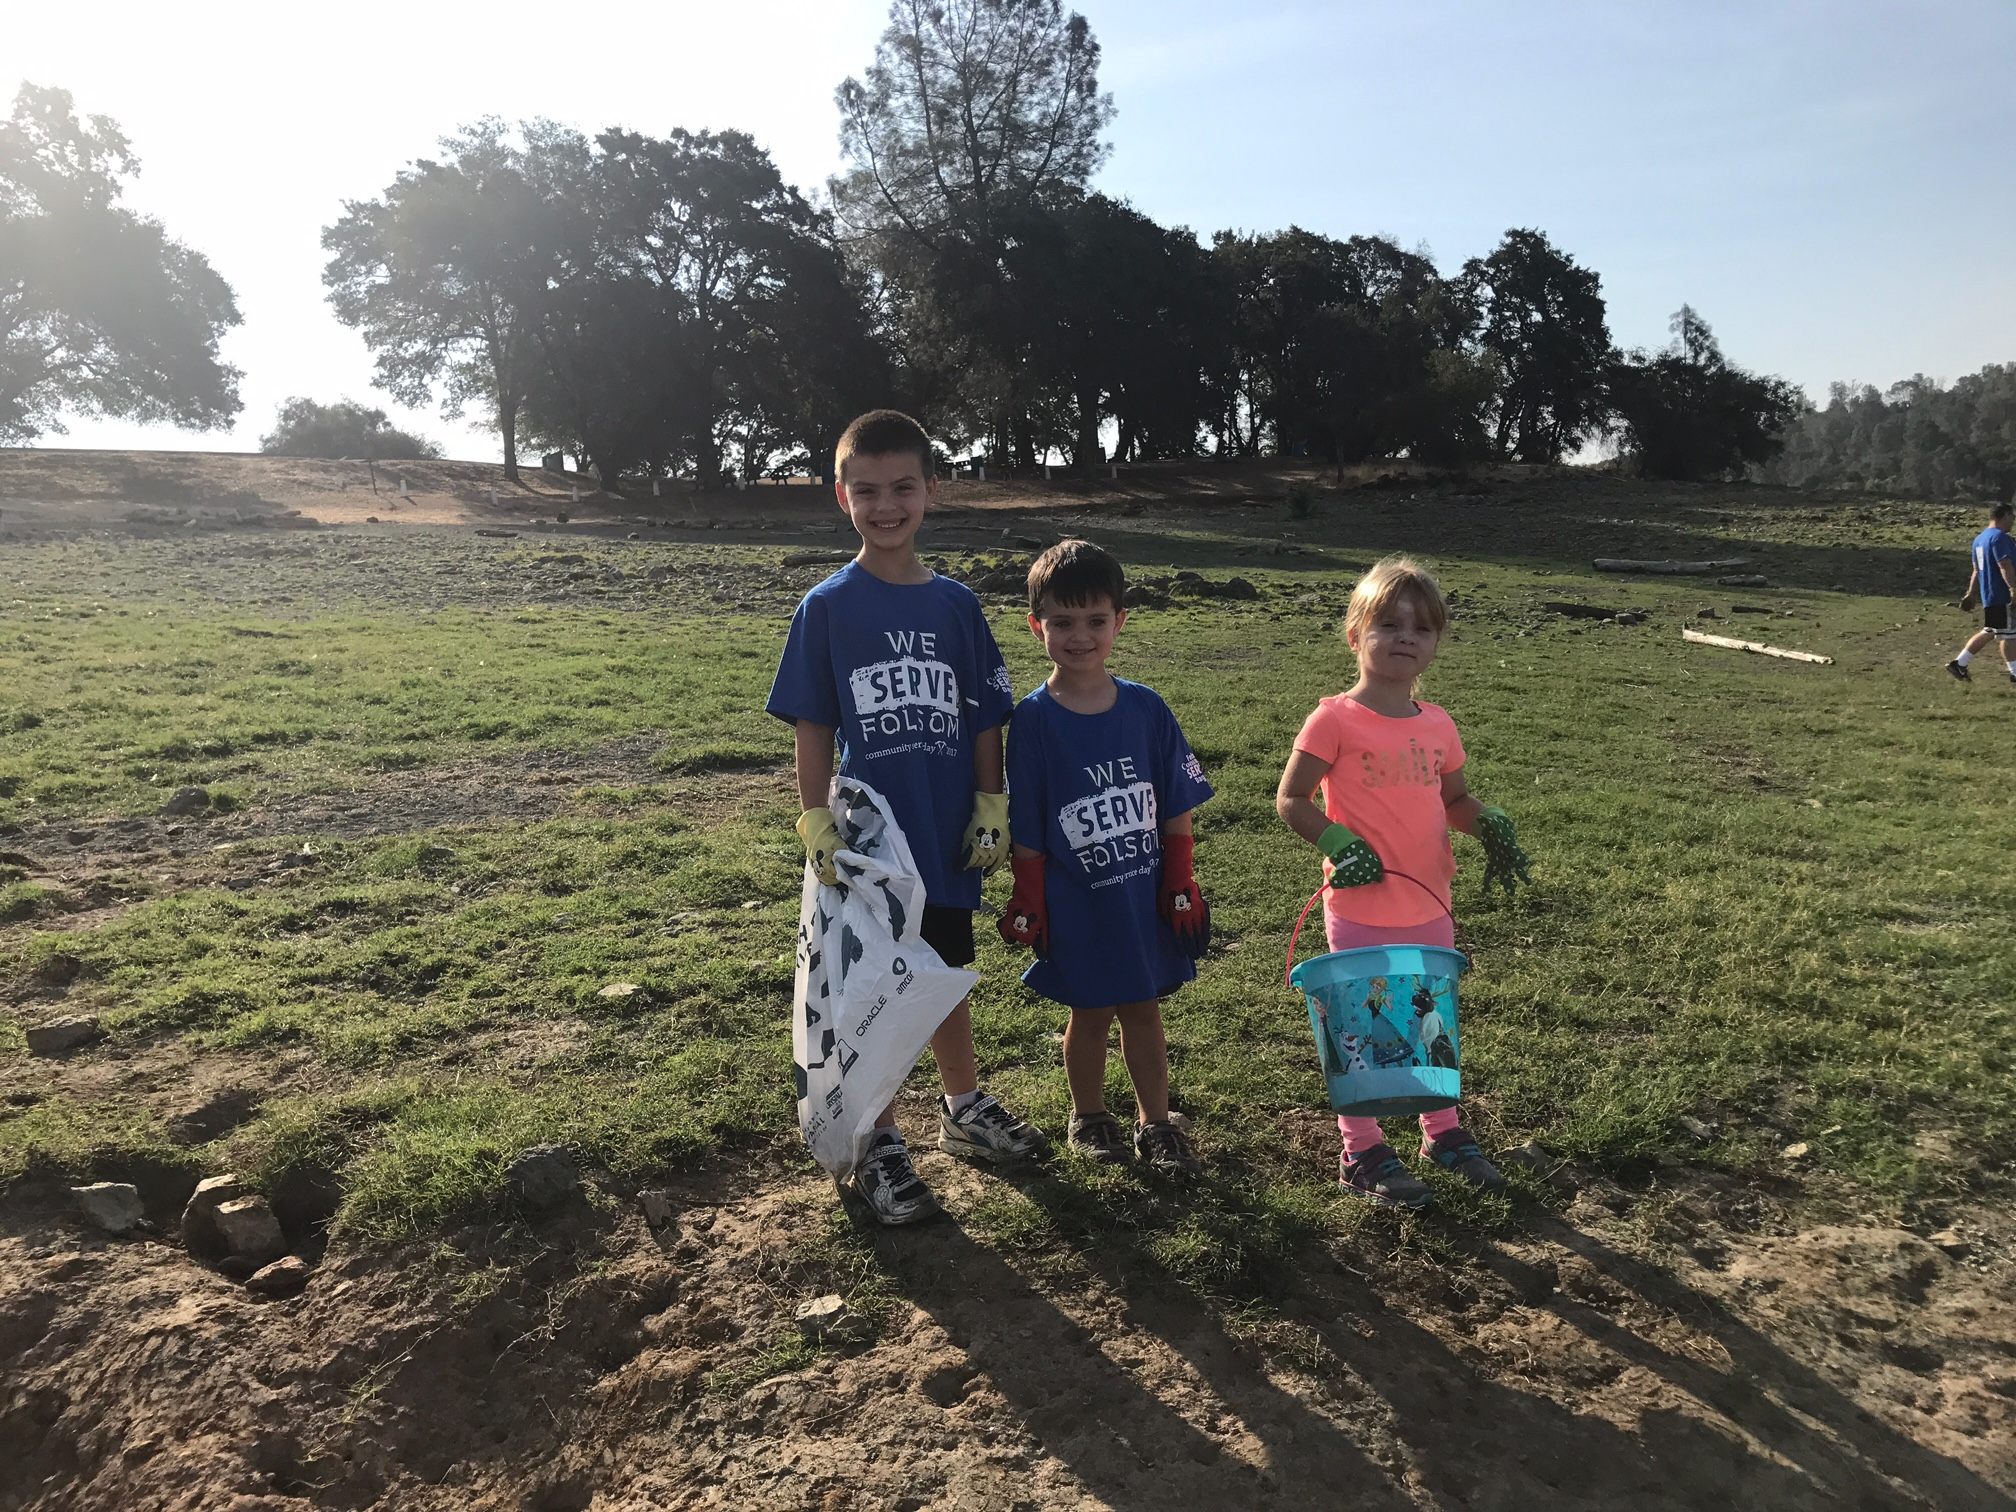 Brayden, Jeren and Addie searching for trash.